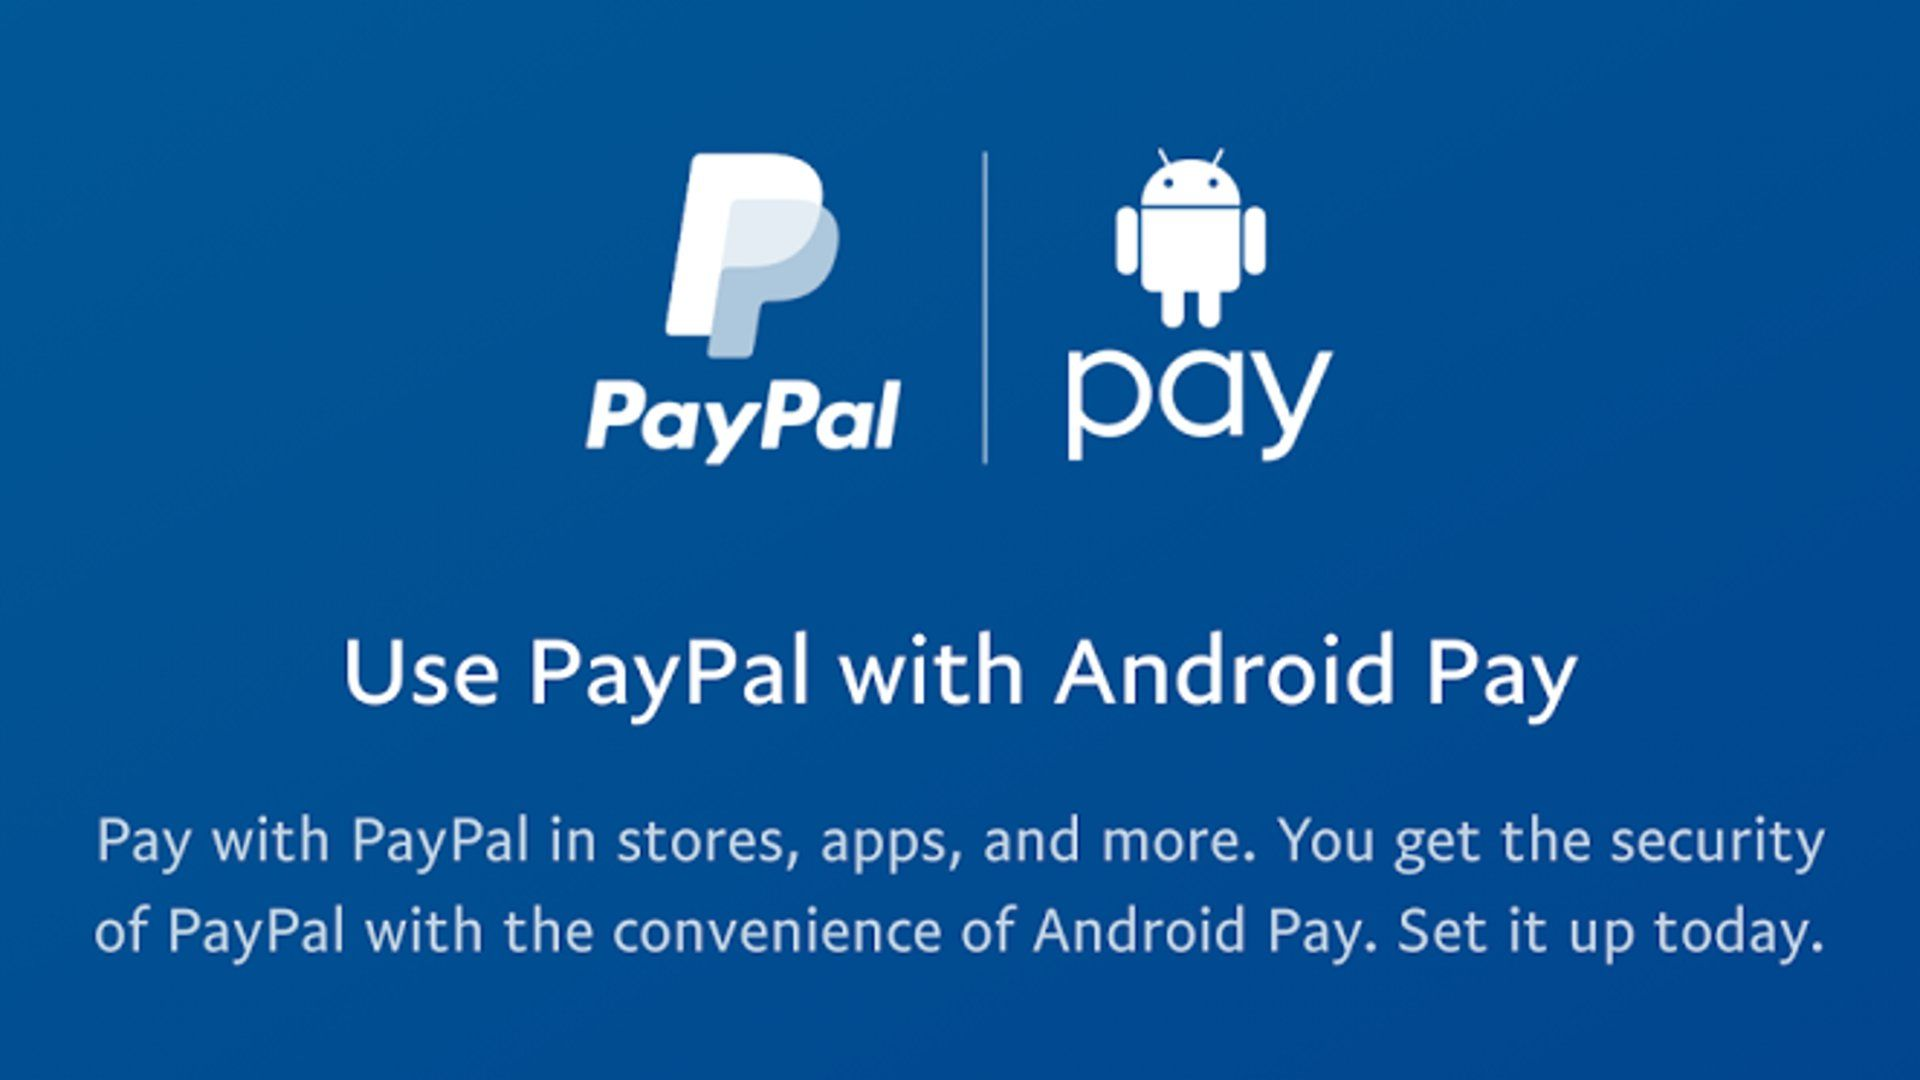 PayPal - Android Pay Integration